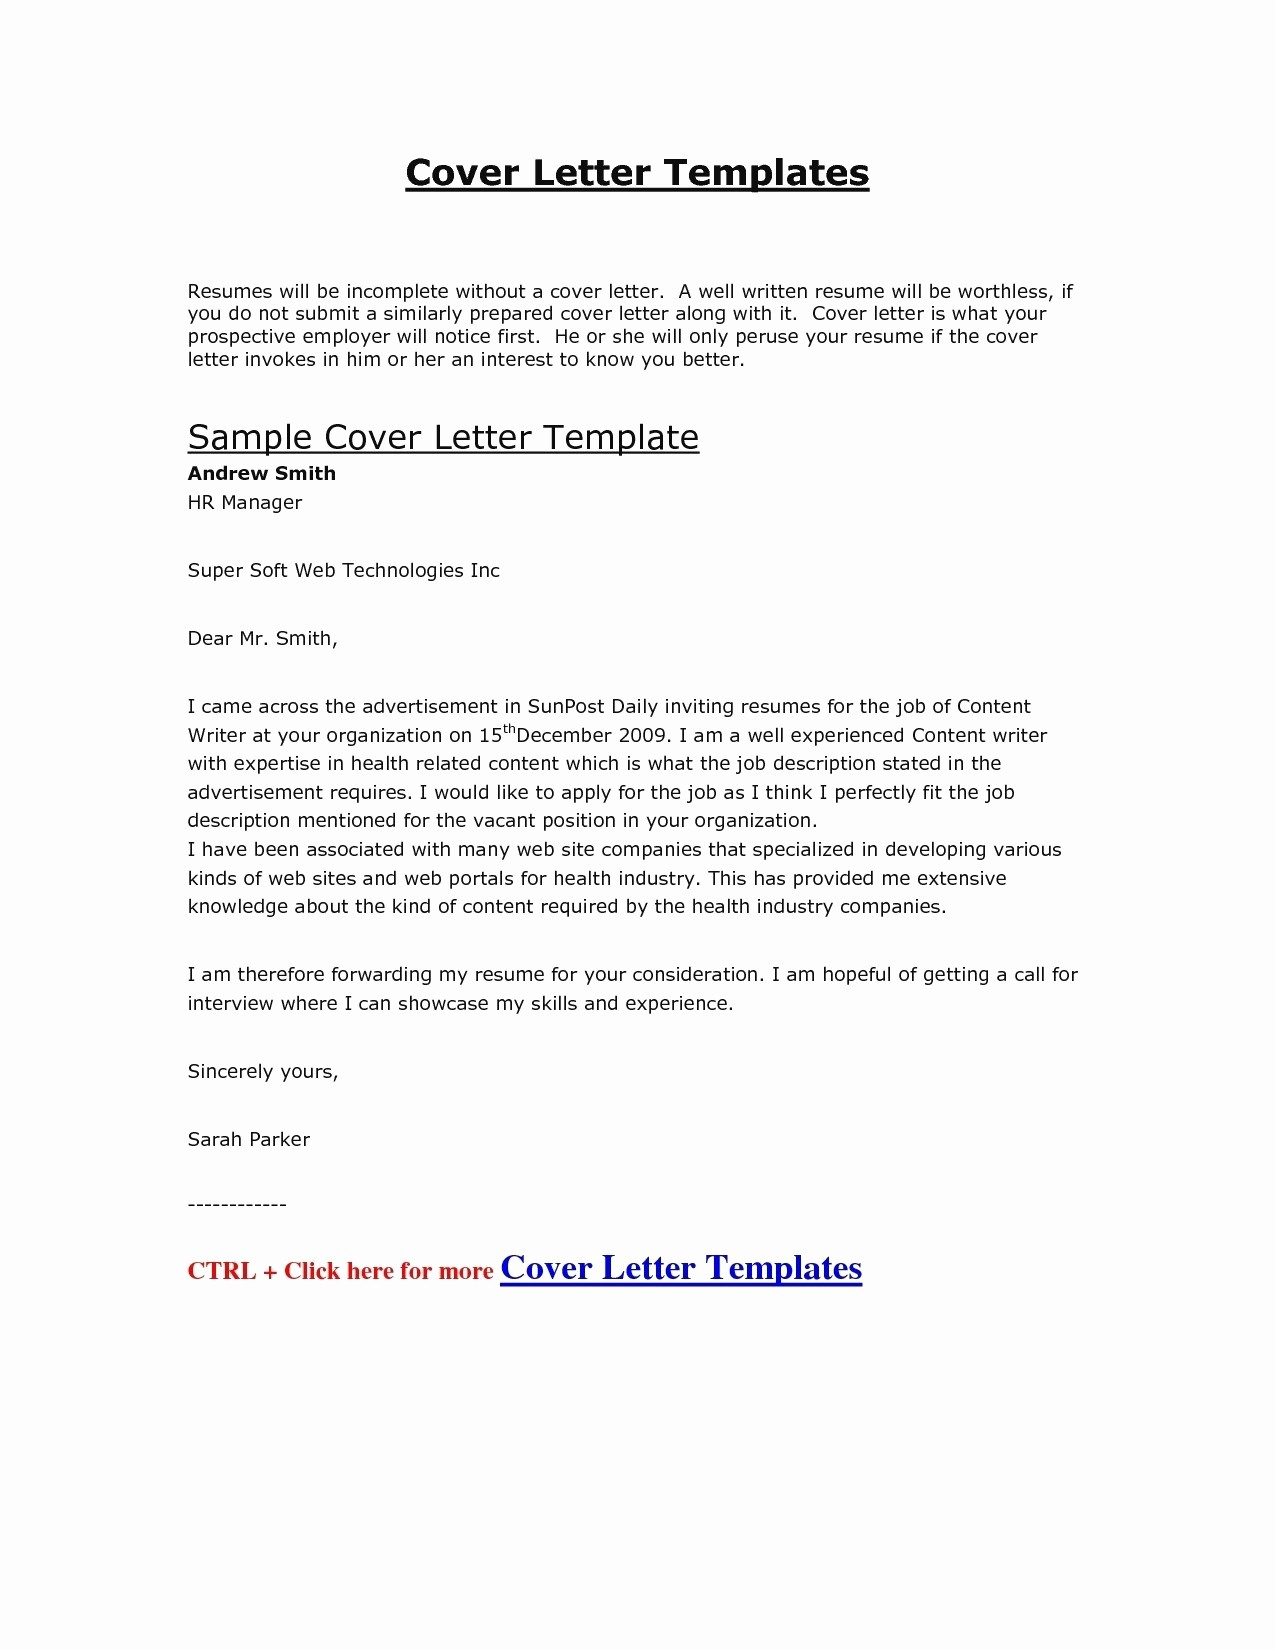 Bad News Letter Template - Job Application Letter format Template Copy Cover Letter Template Hr